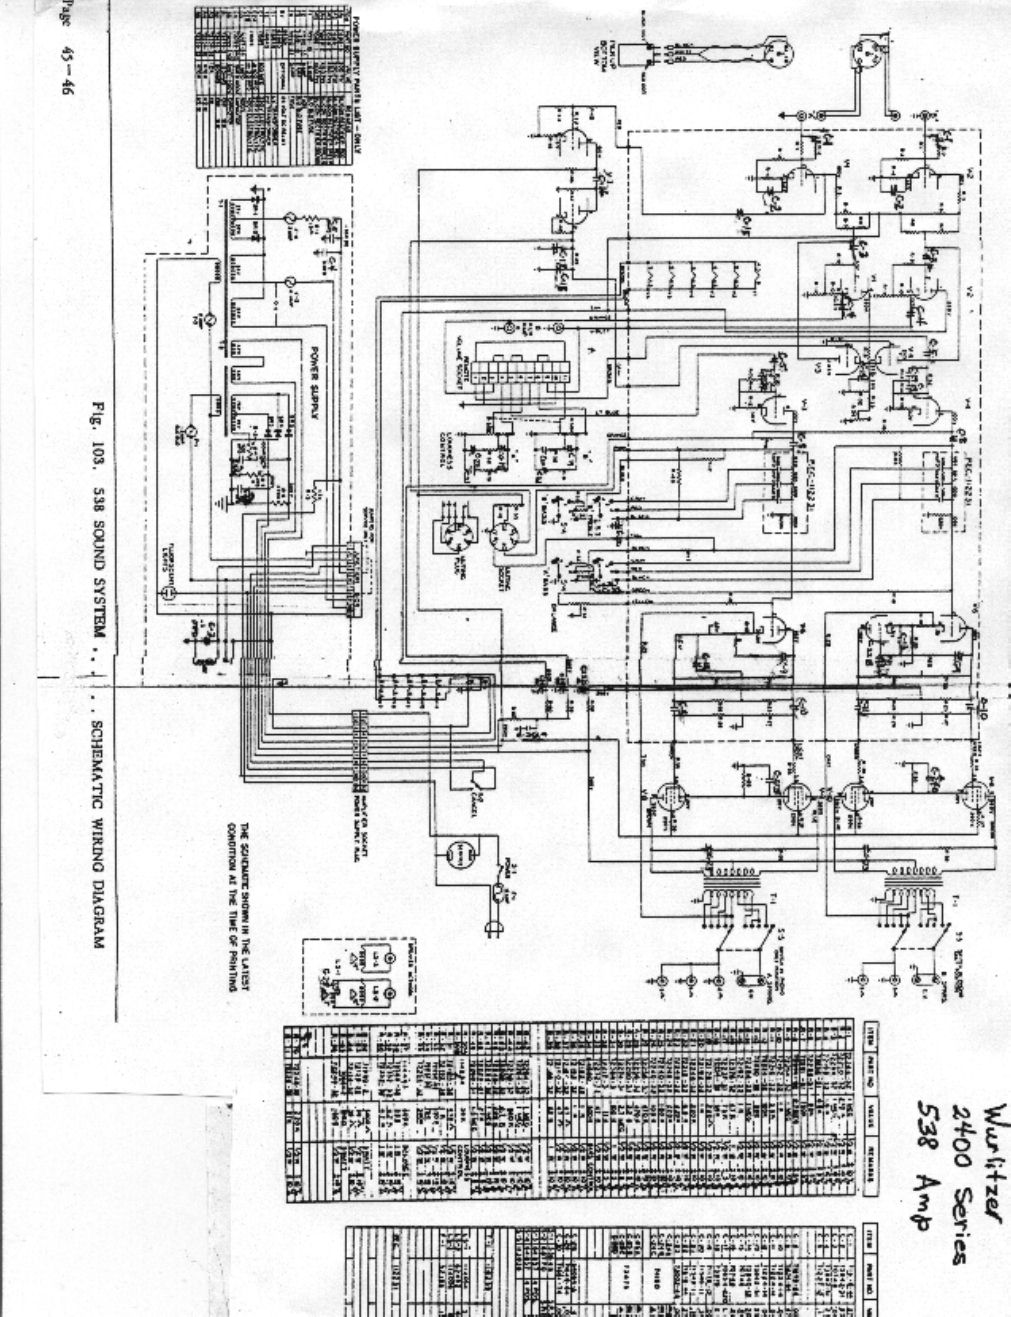 From Karlh44 At Knologynet Tue Aug 1 010219 2006 Rowe Ami Jukebox Electronic Circuit Board Repair All Models R80s To R 538